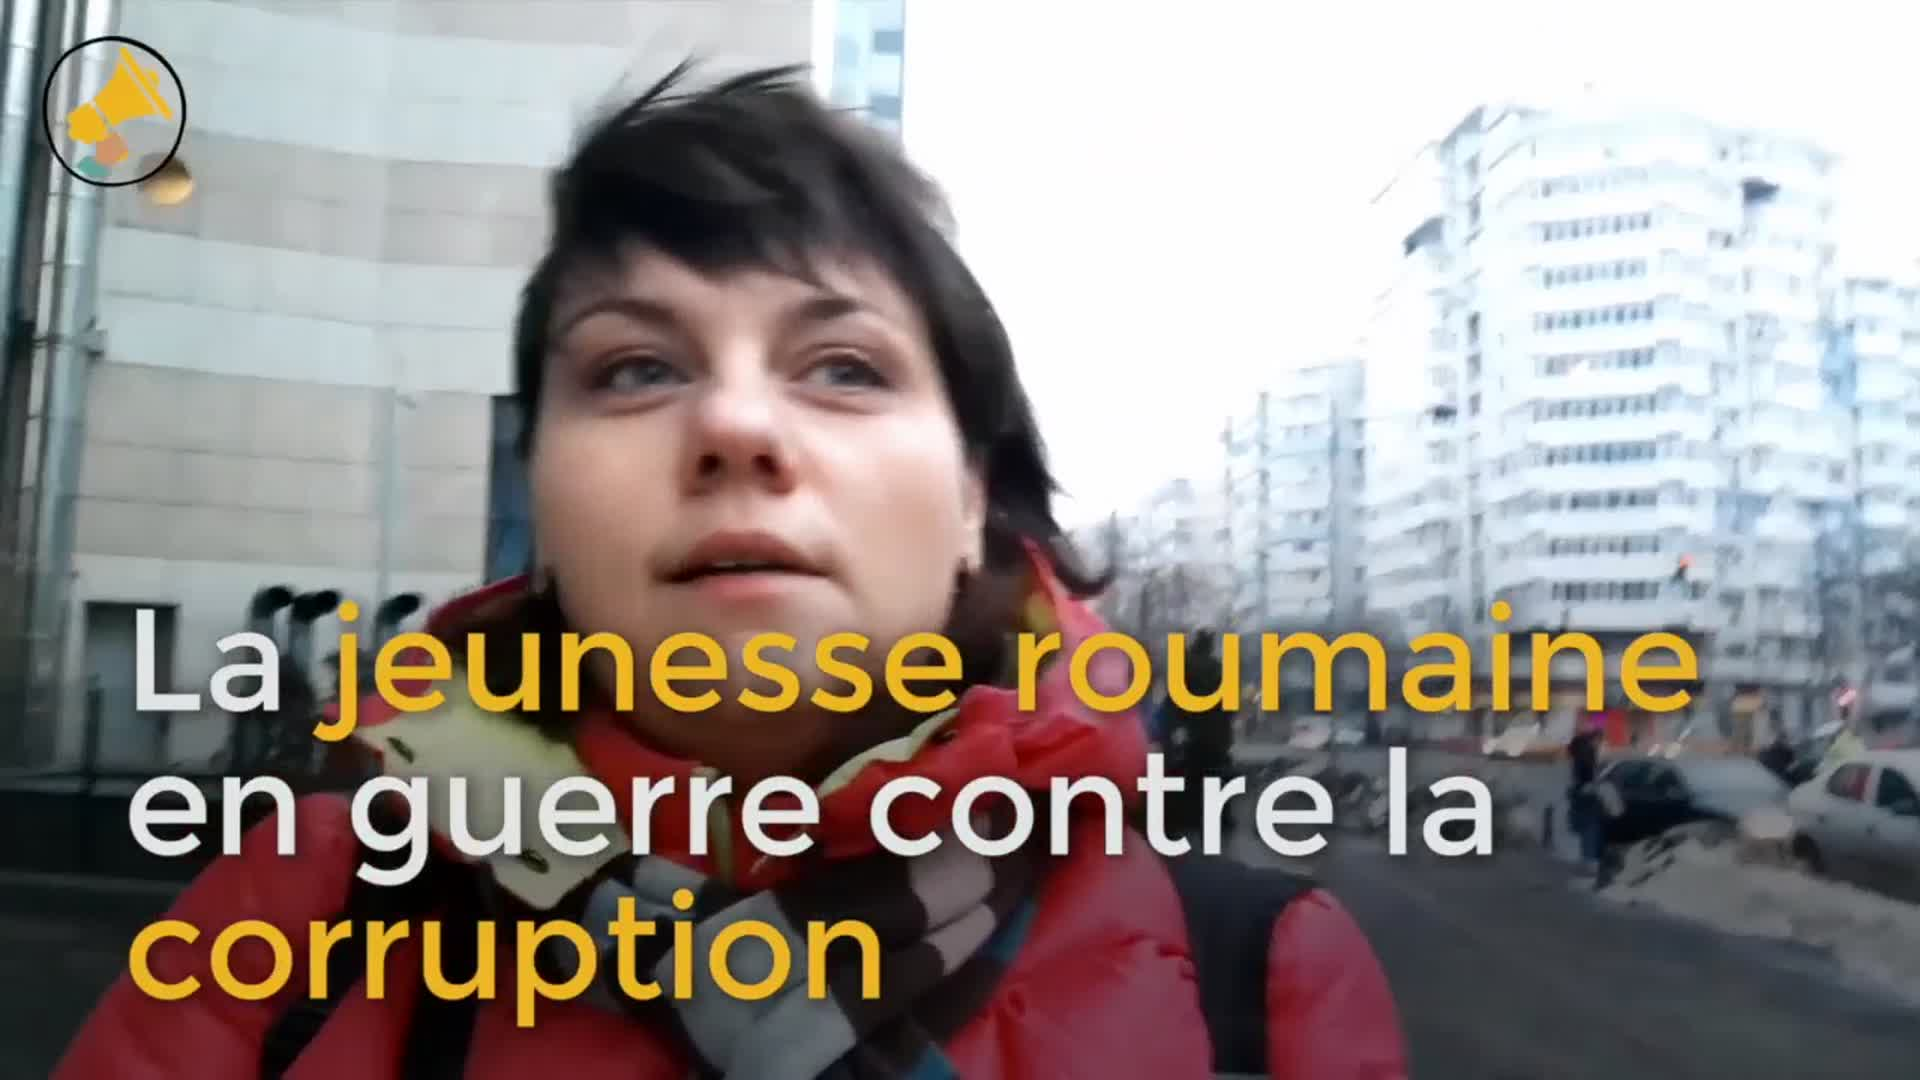 La jeunesse roumaine en guerre contre la corruption